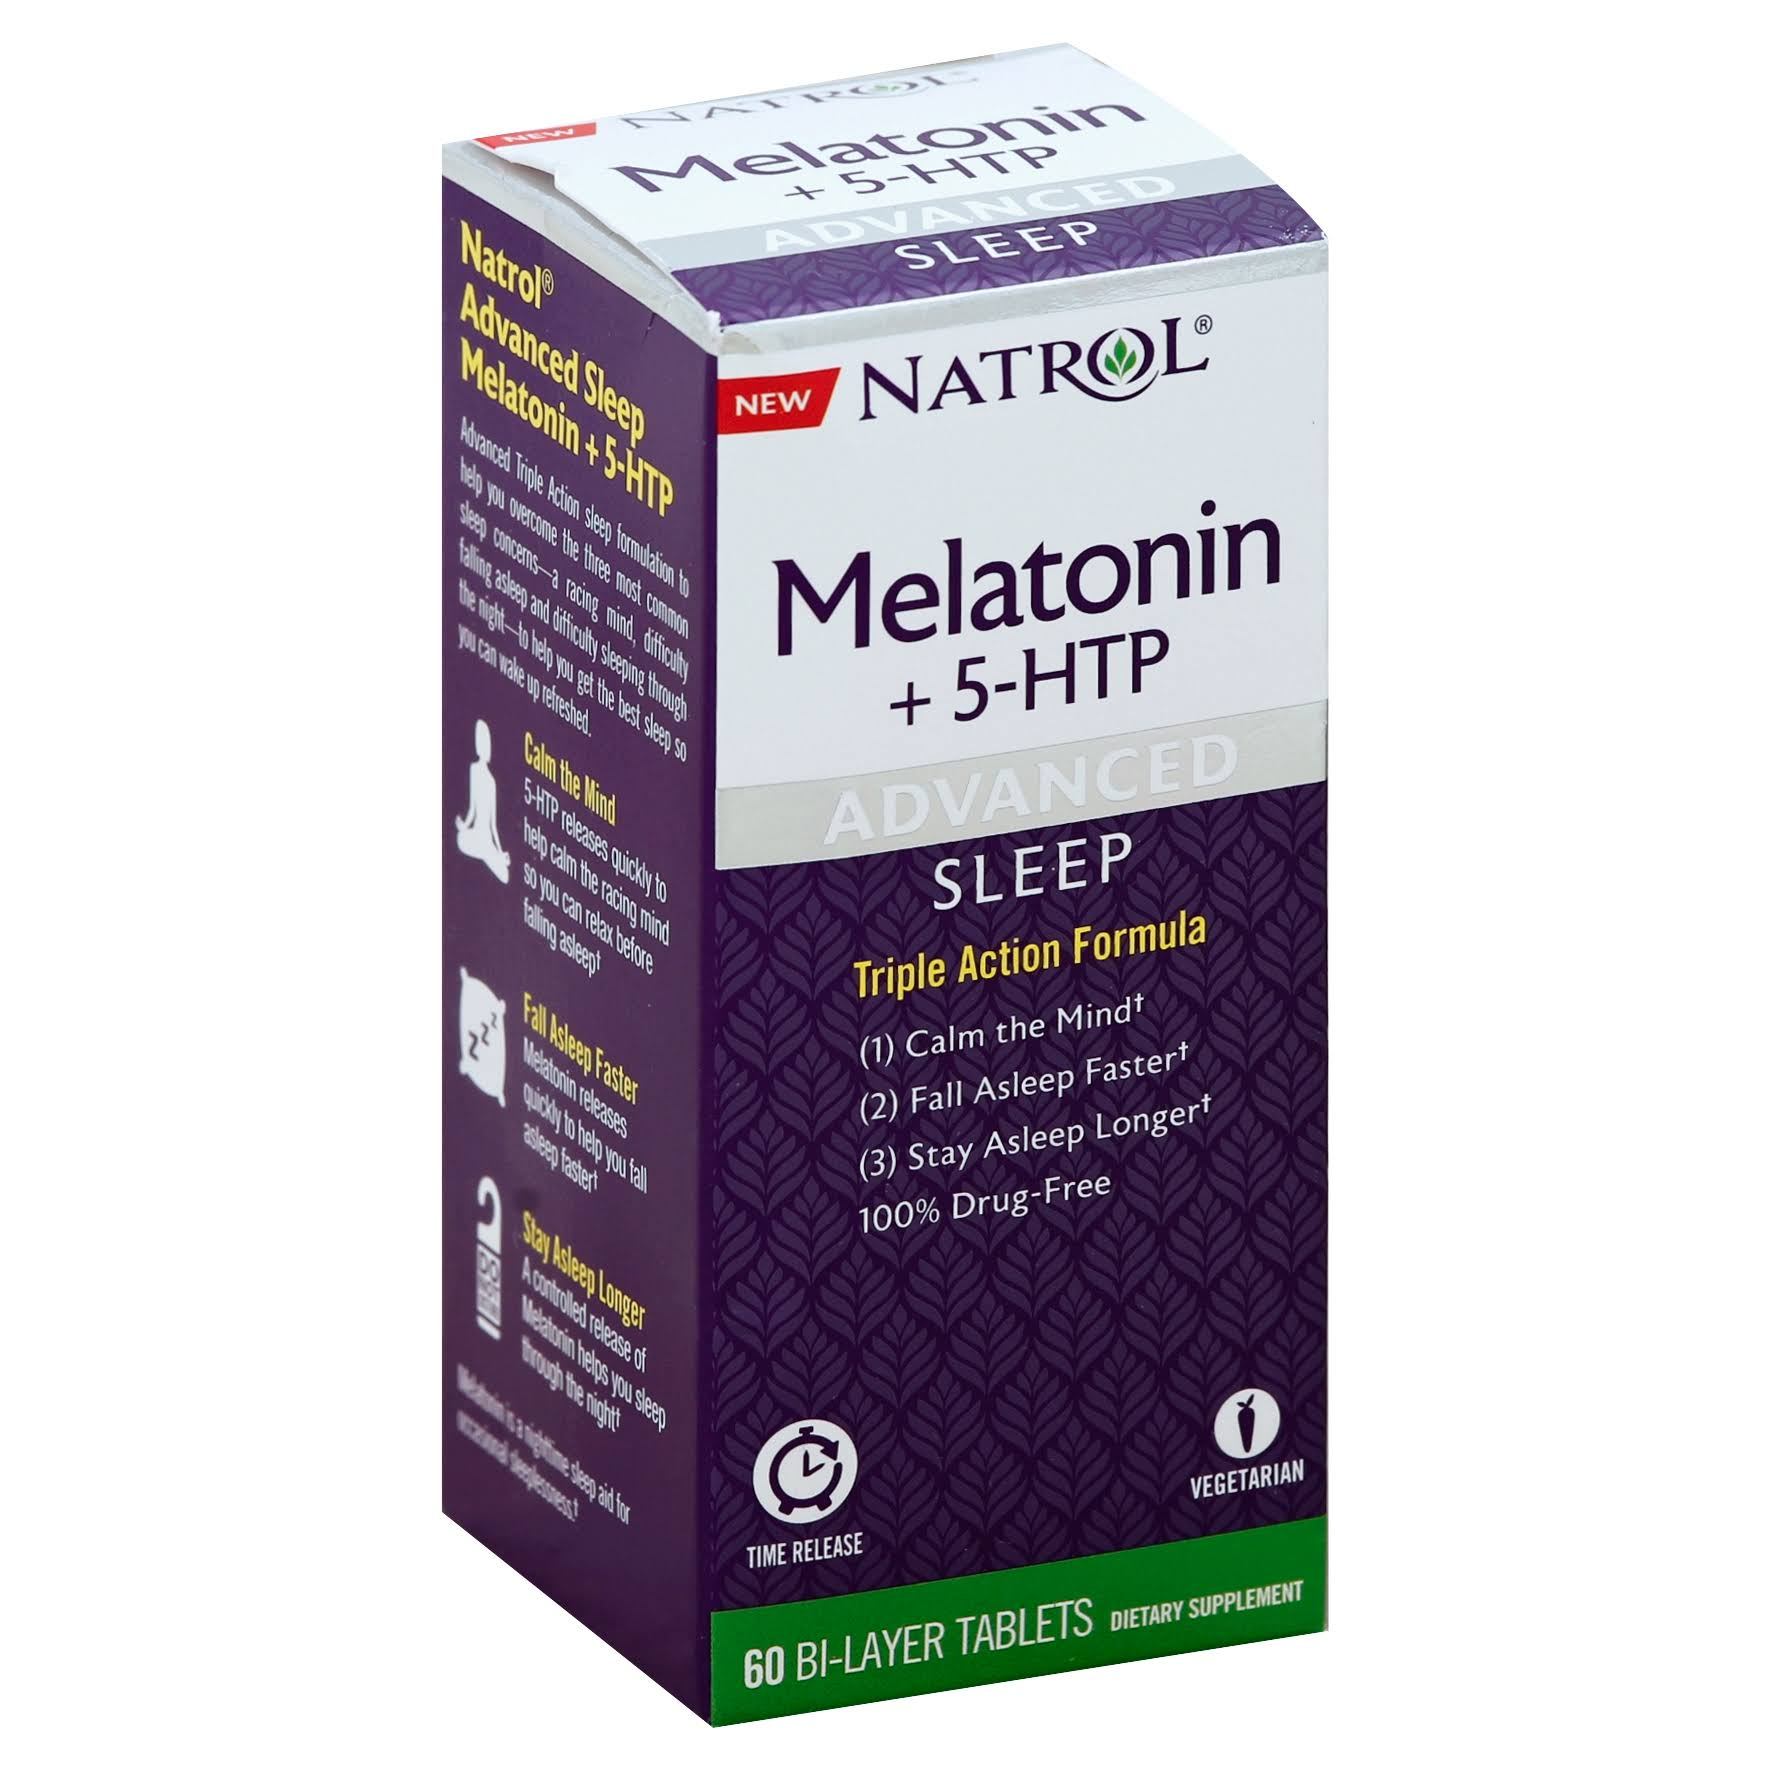 Natrol Advanced Sleep Melatonin Supplements - 60pcs